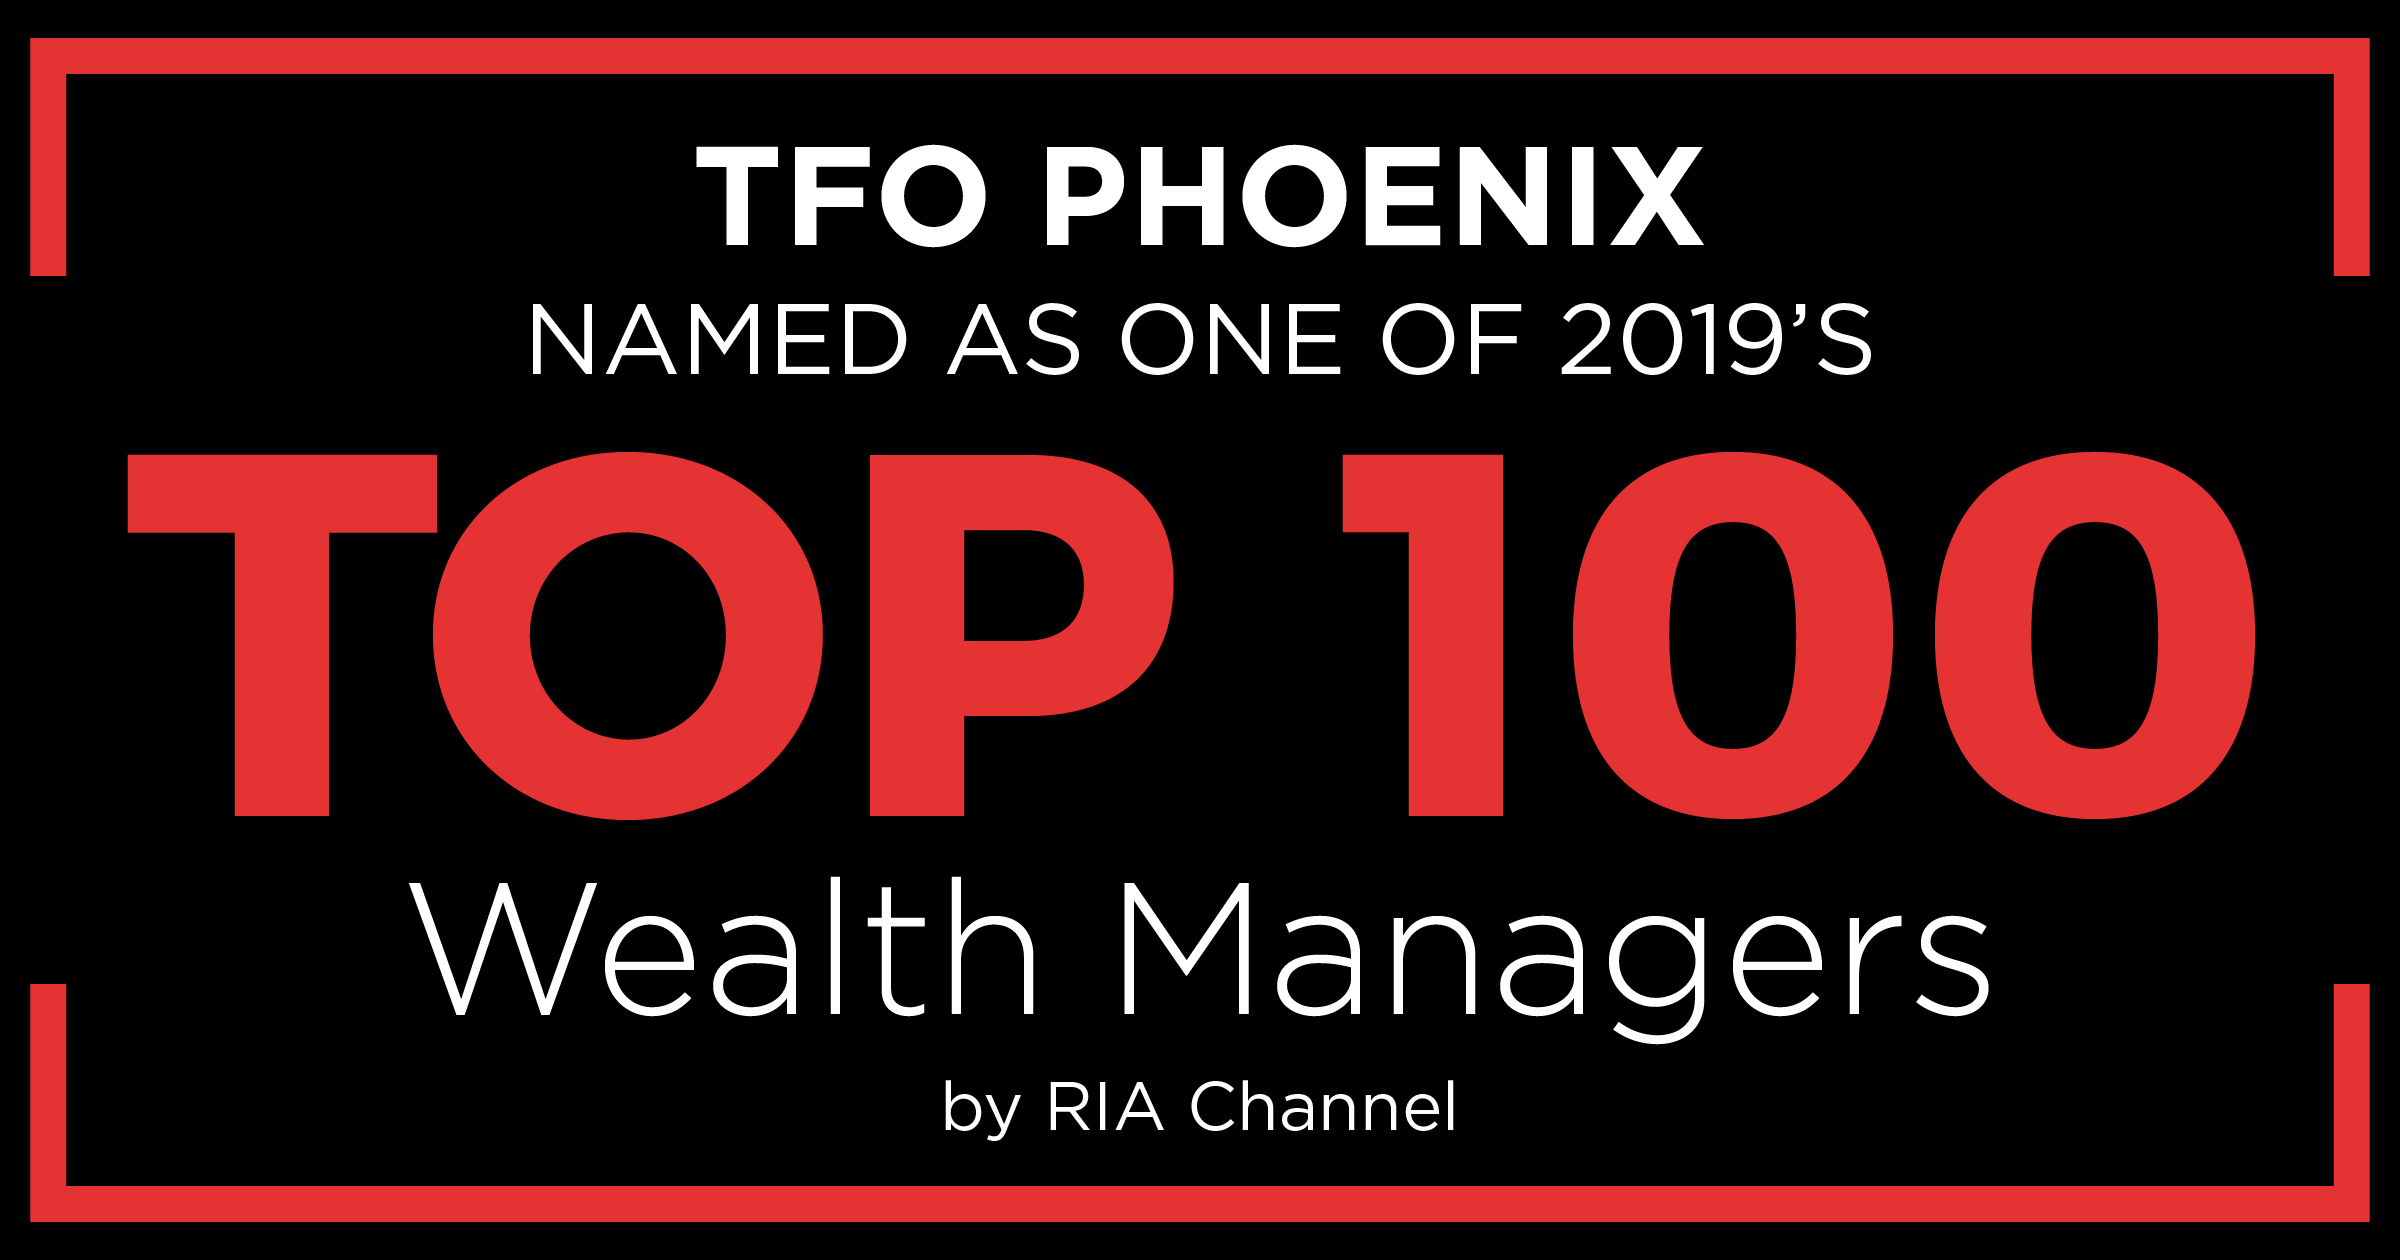 TFO Phoenix Named to 2019 Top 100 Wealth Managers by RIA Channel